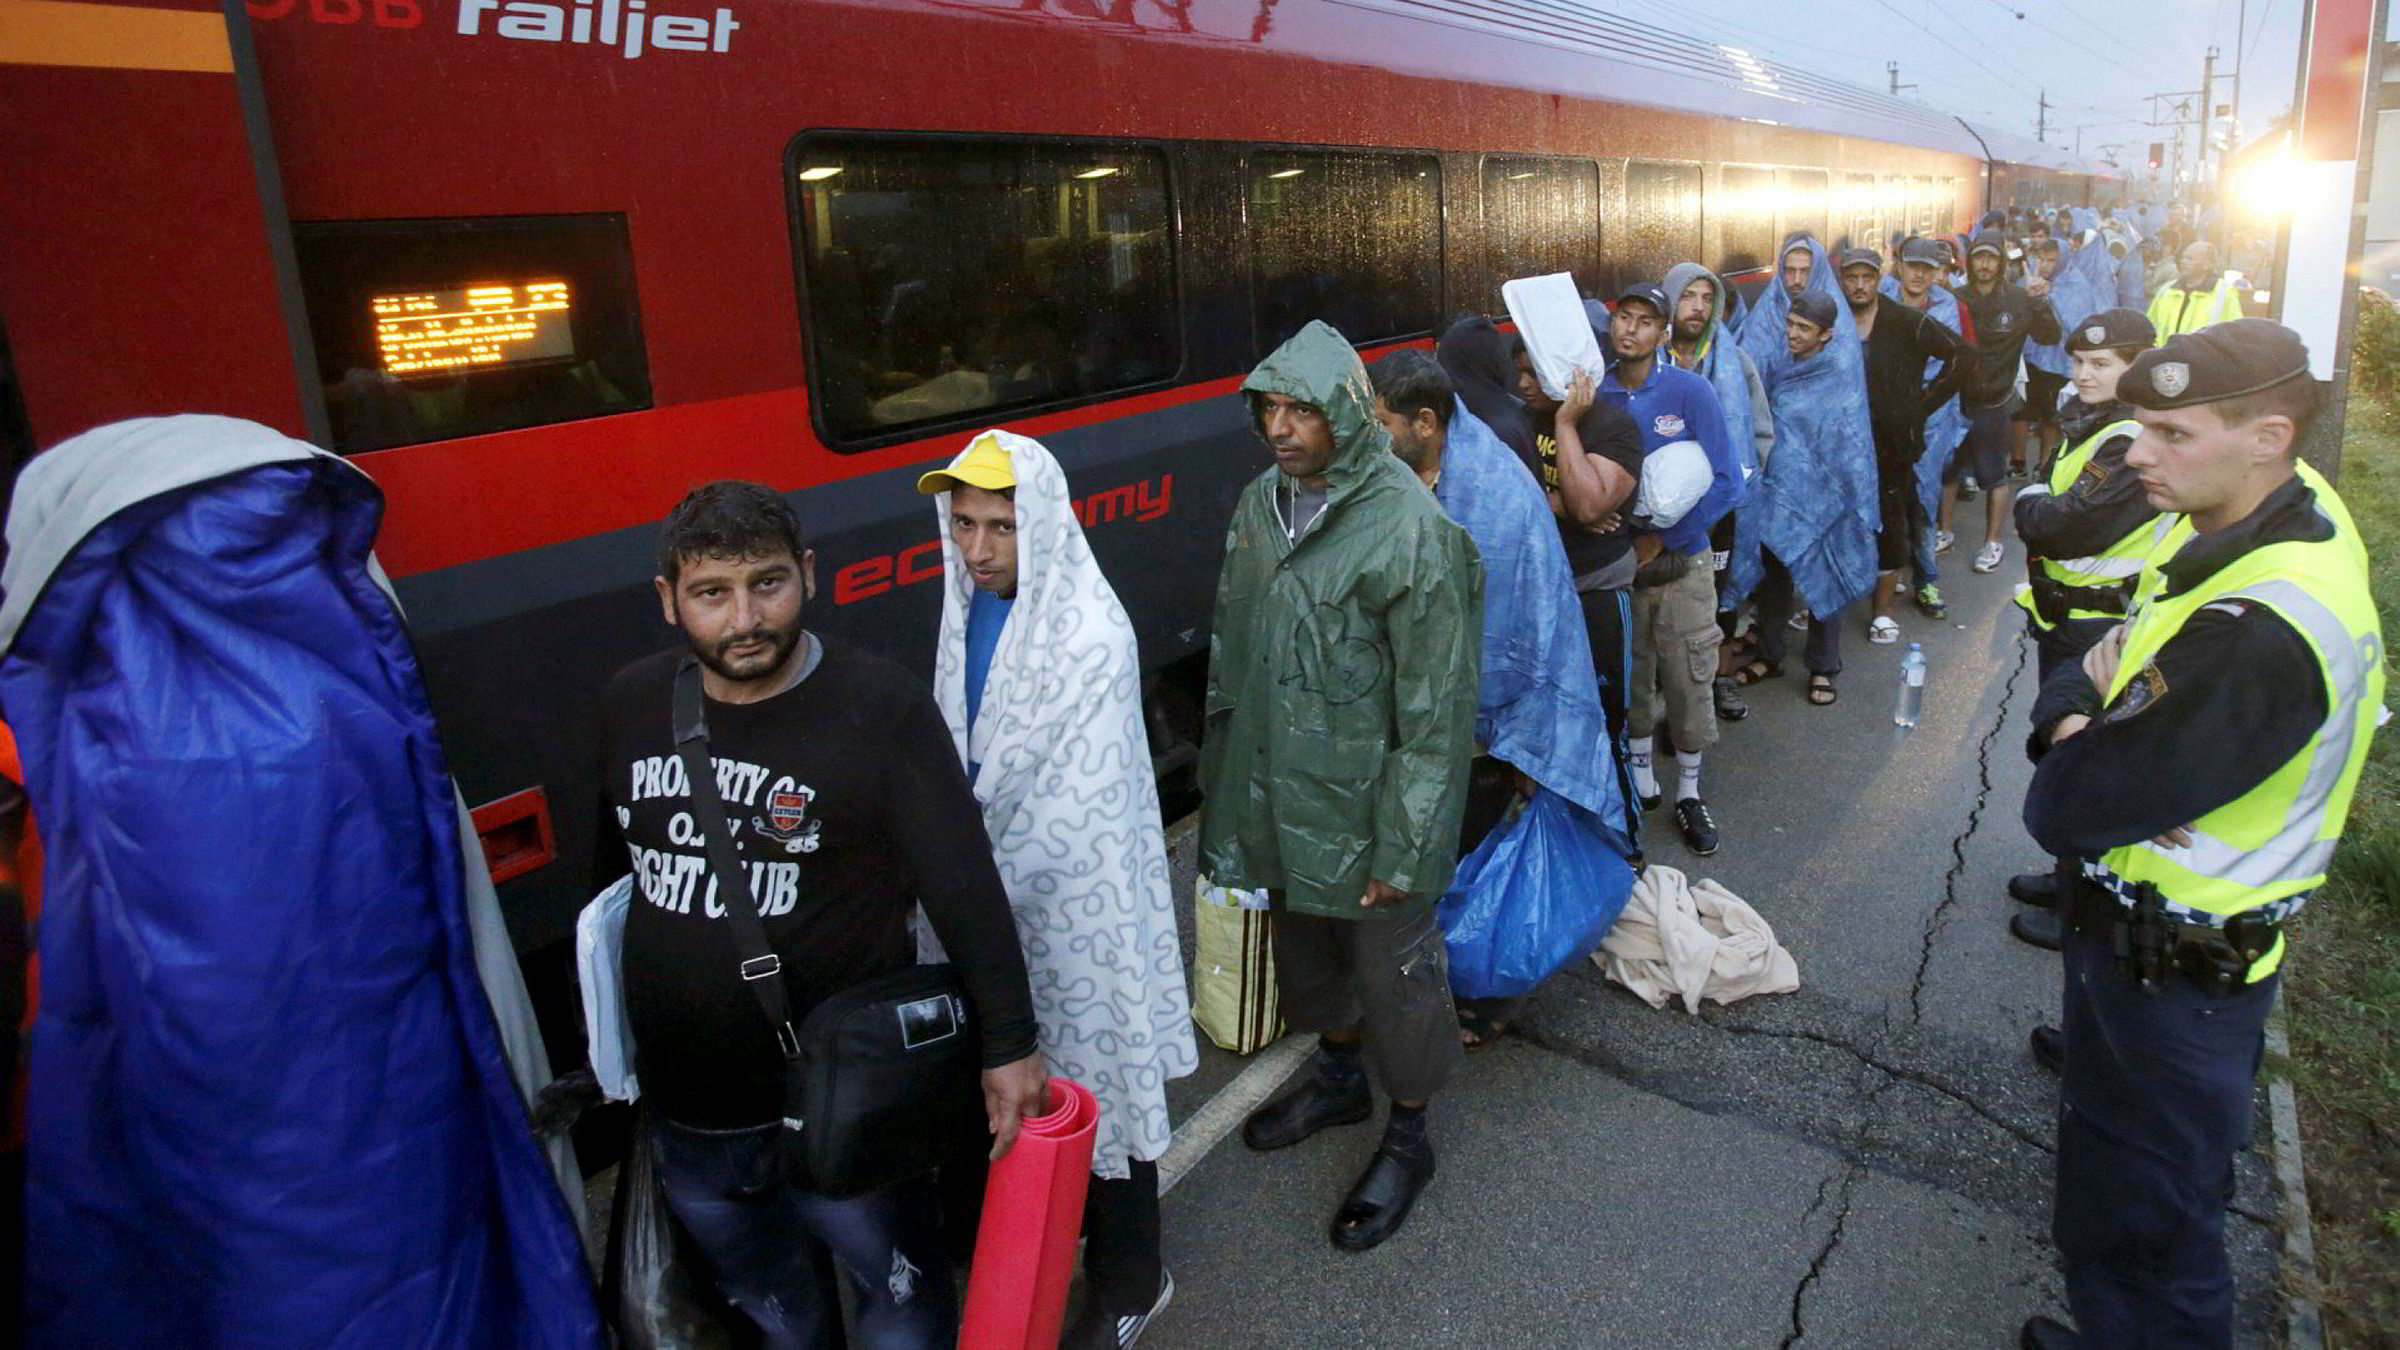 Migrants arrive at the Austrian train station of Nickelsdorf to board trains to Germany, September 5, 2015. REUTERS/Heinz-Peter Bader/File Photo ---